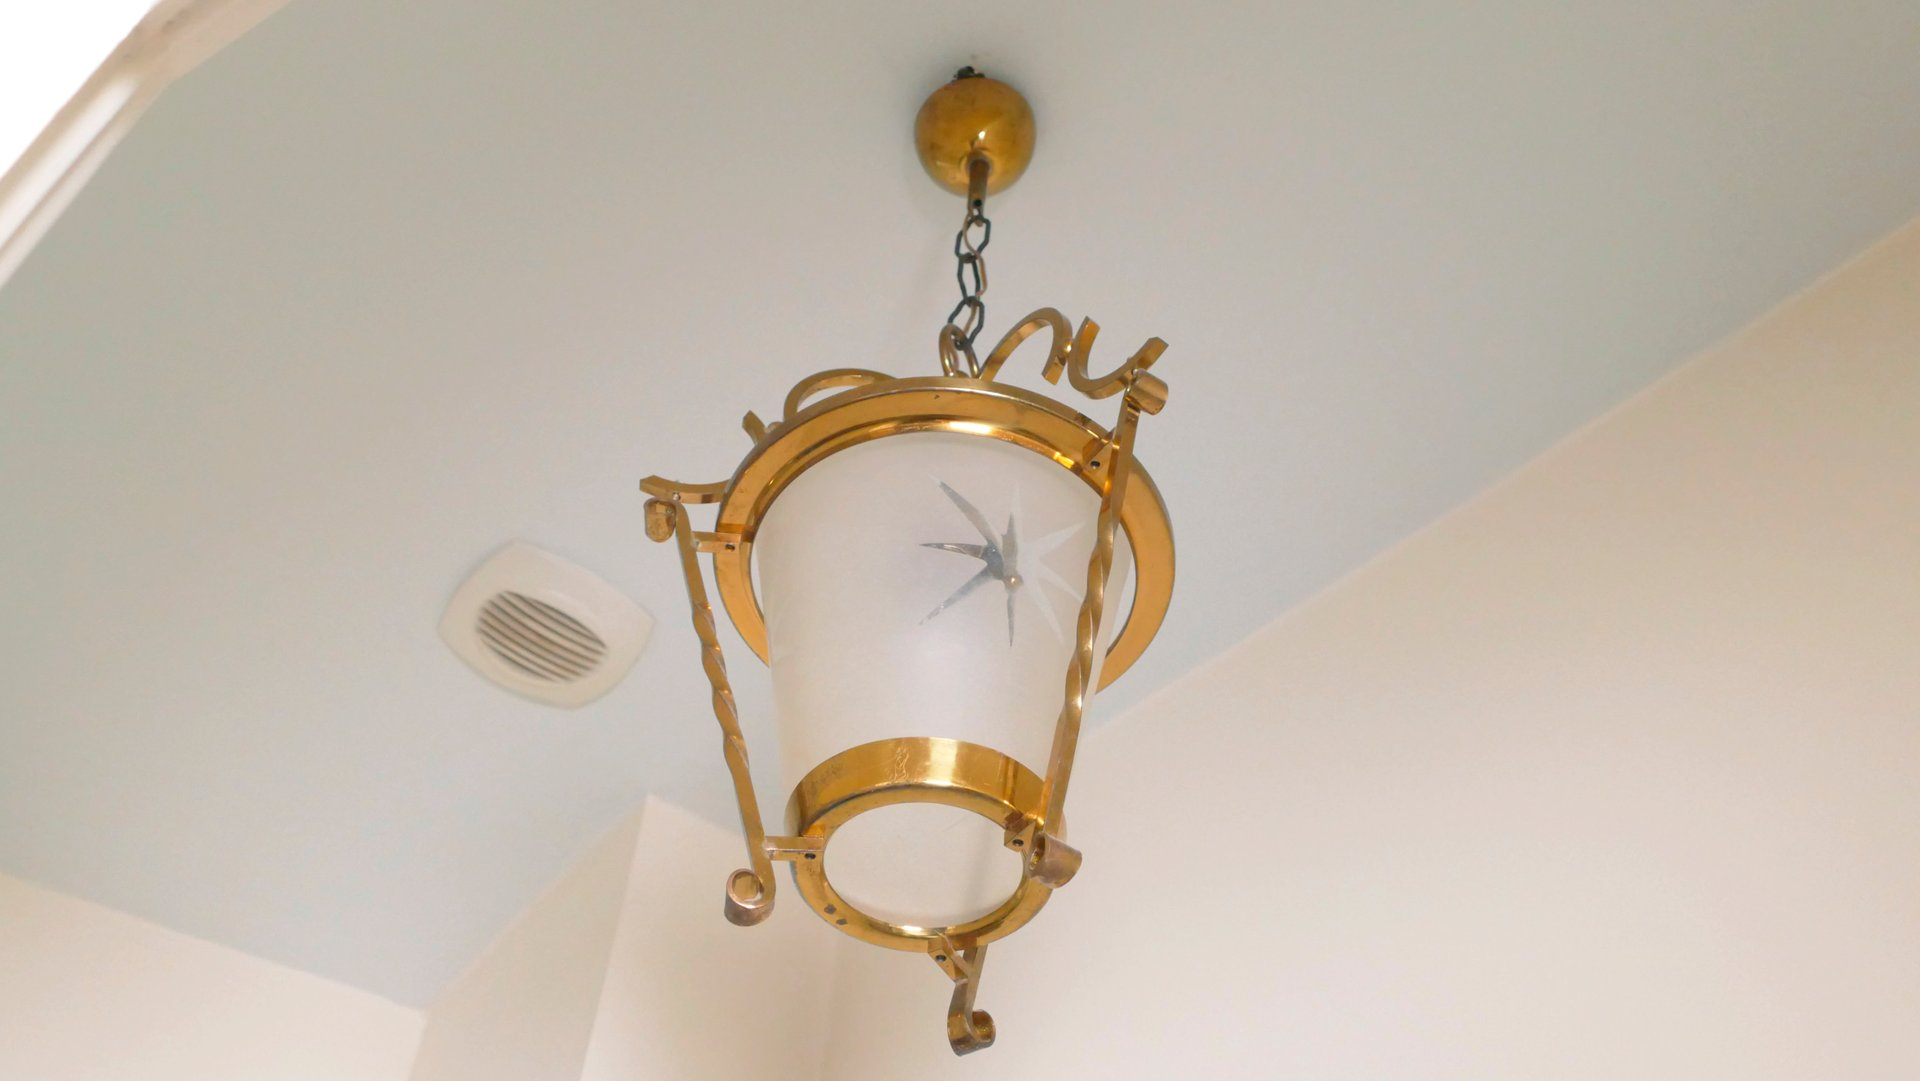 Art deco french brass ceiling lamp 1940s for sale at pamono art deco french brass ceiling lamp 1940s mozeypictures Choice Image